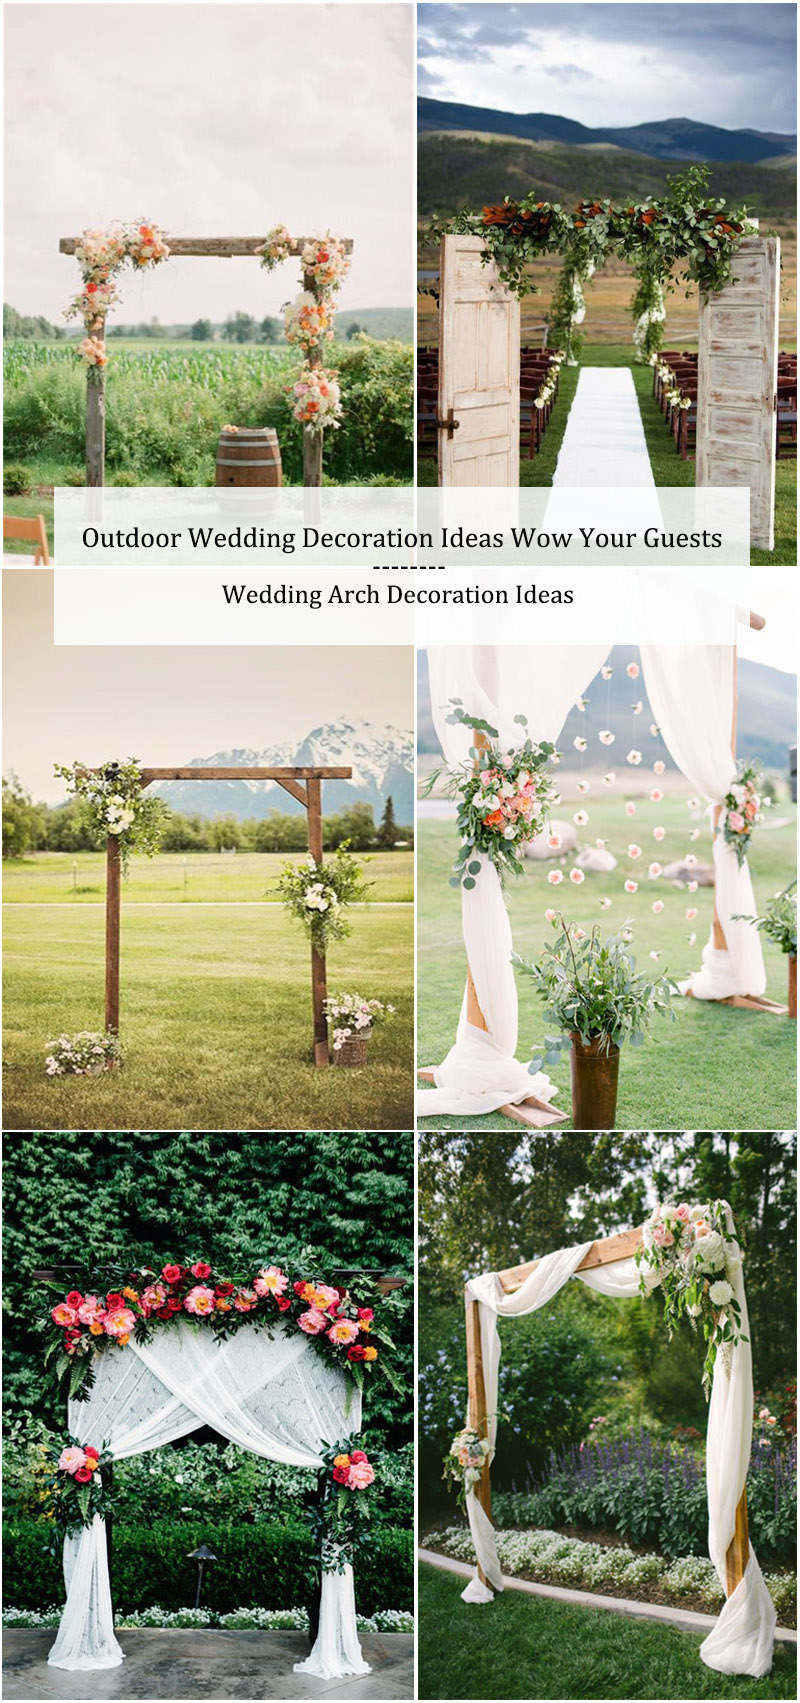 Outdoor Wedding Decoration Ideas-Wedding Arch Decoration Ideas